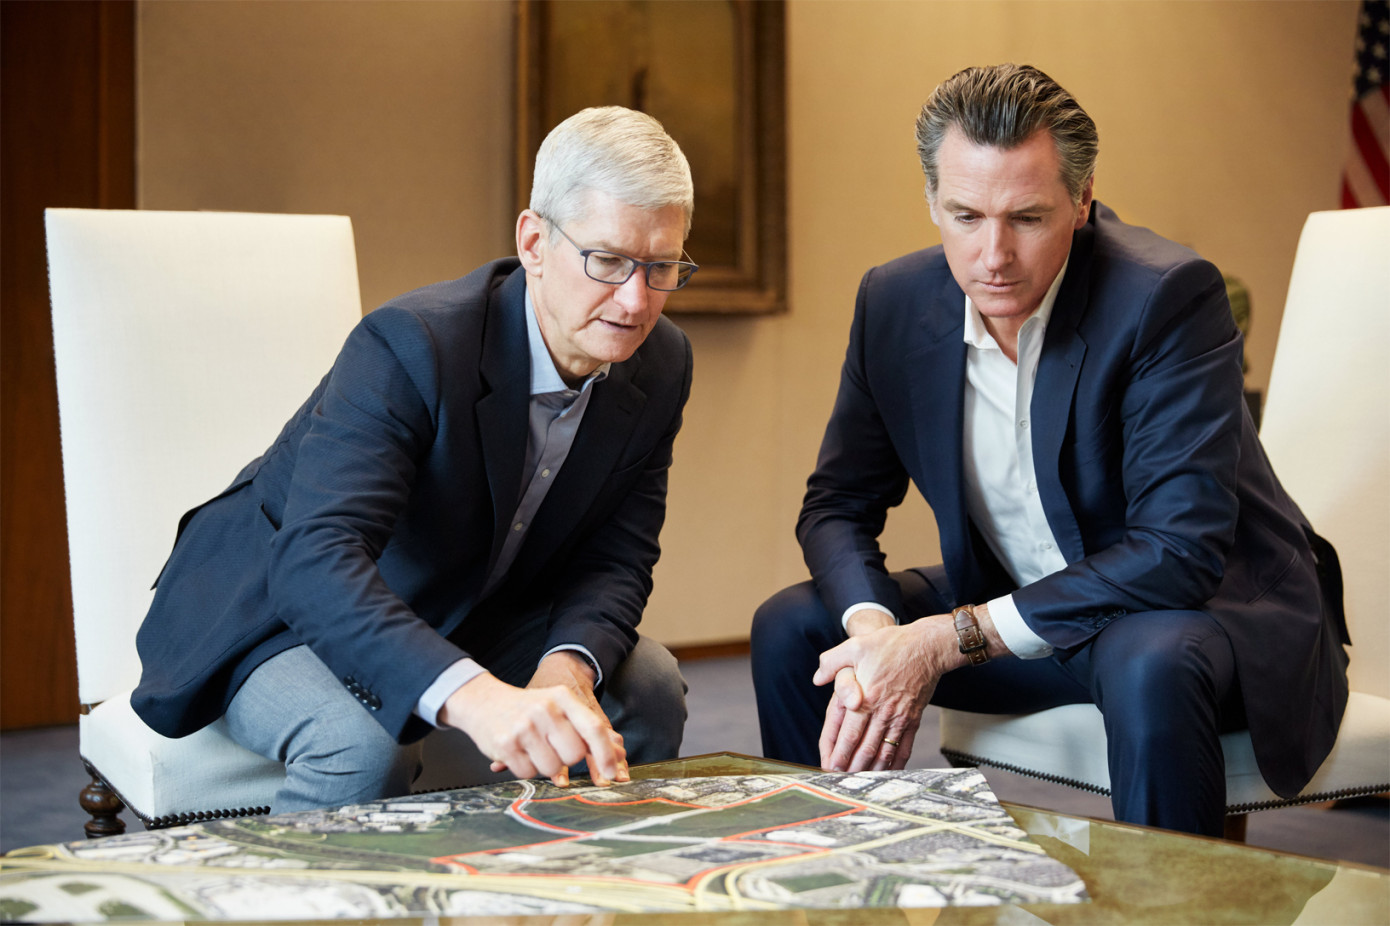 Apple Commits $2.5 Billion to Address California's Housing Crisis and Homelessness Issues